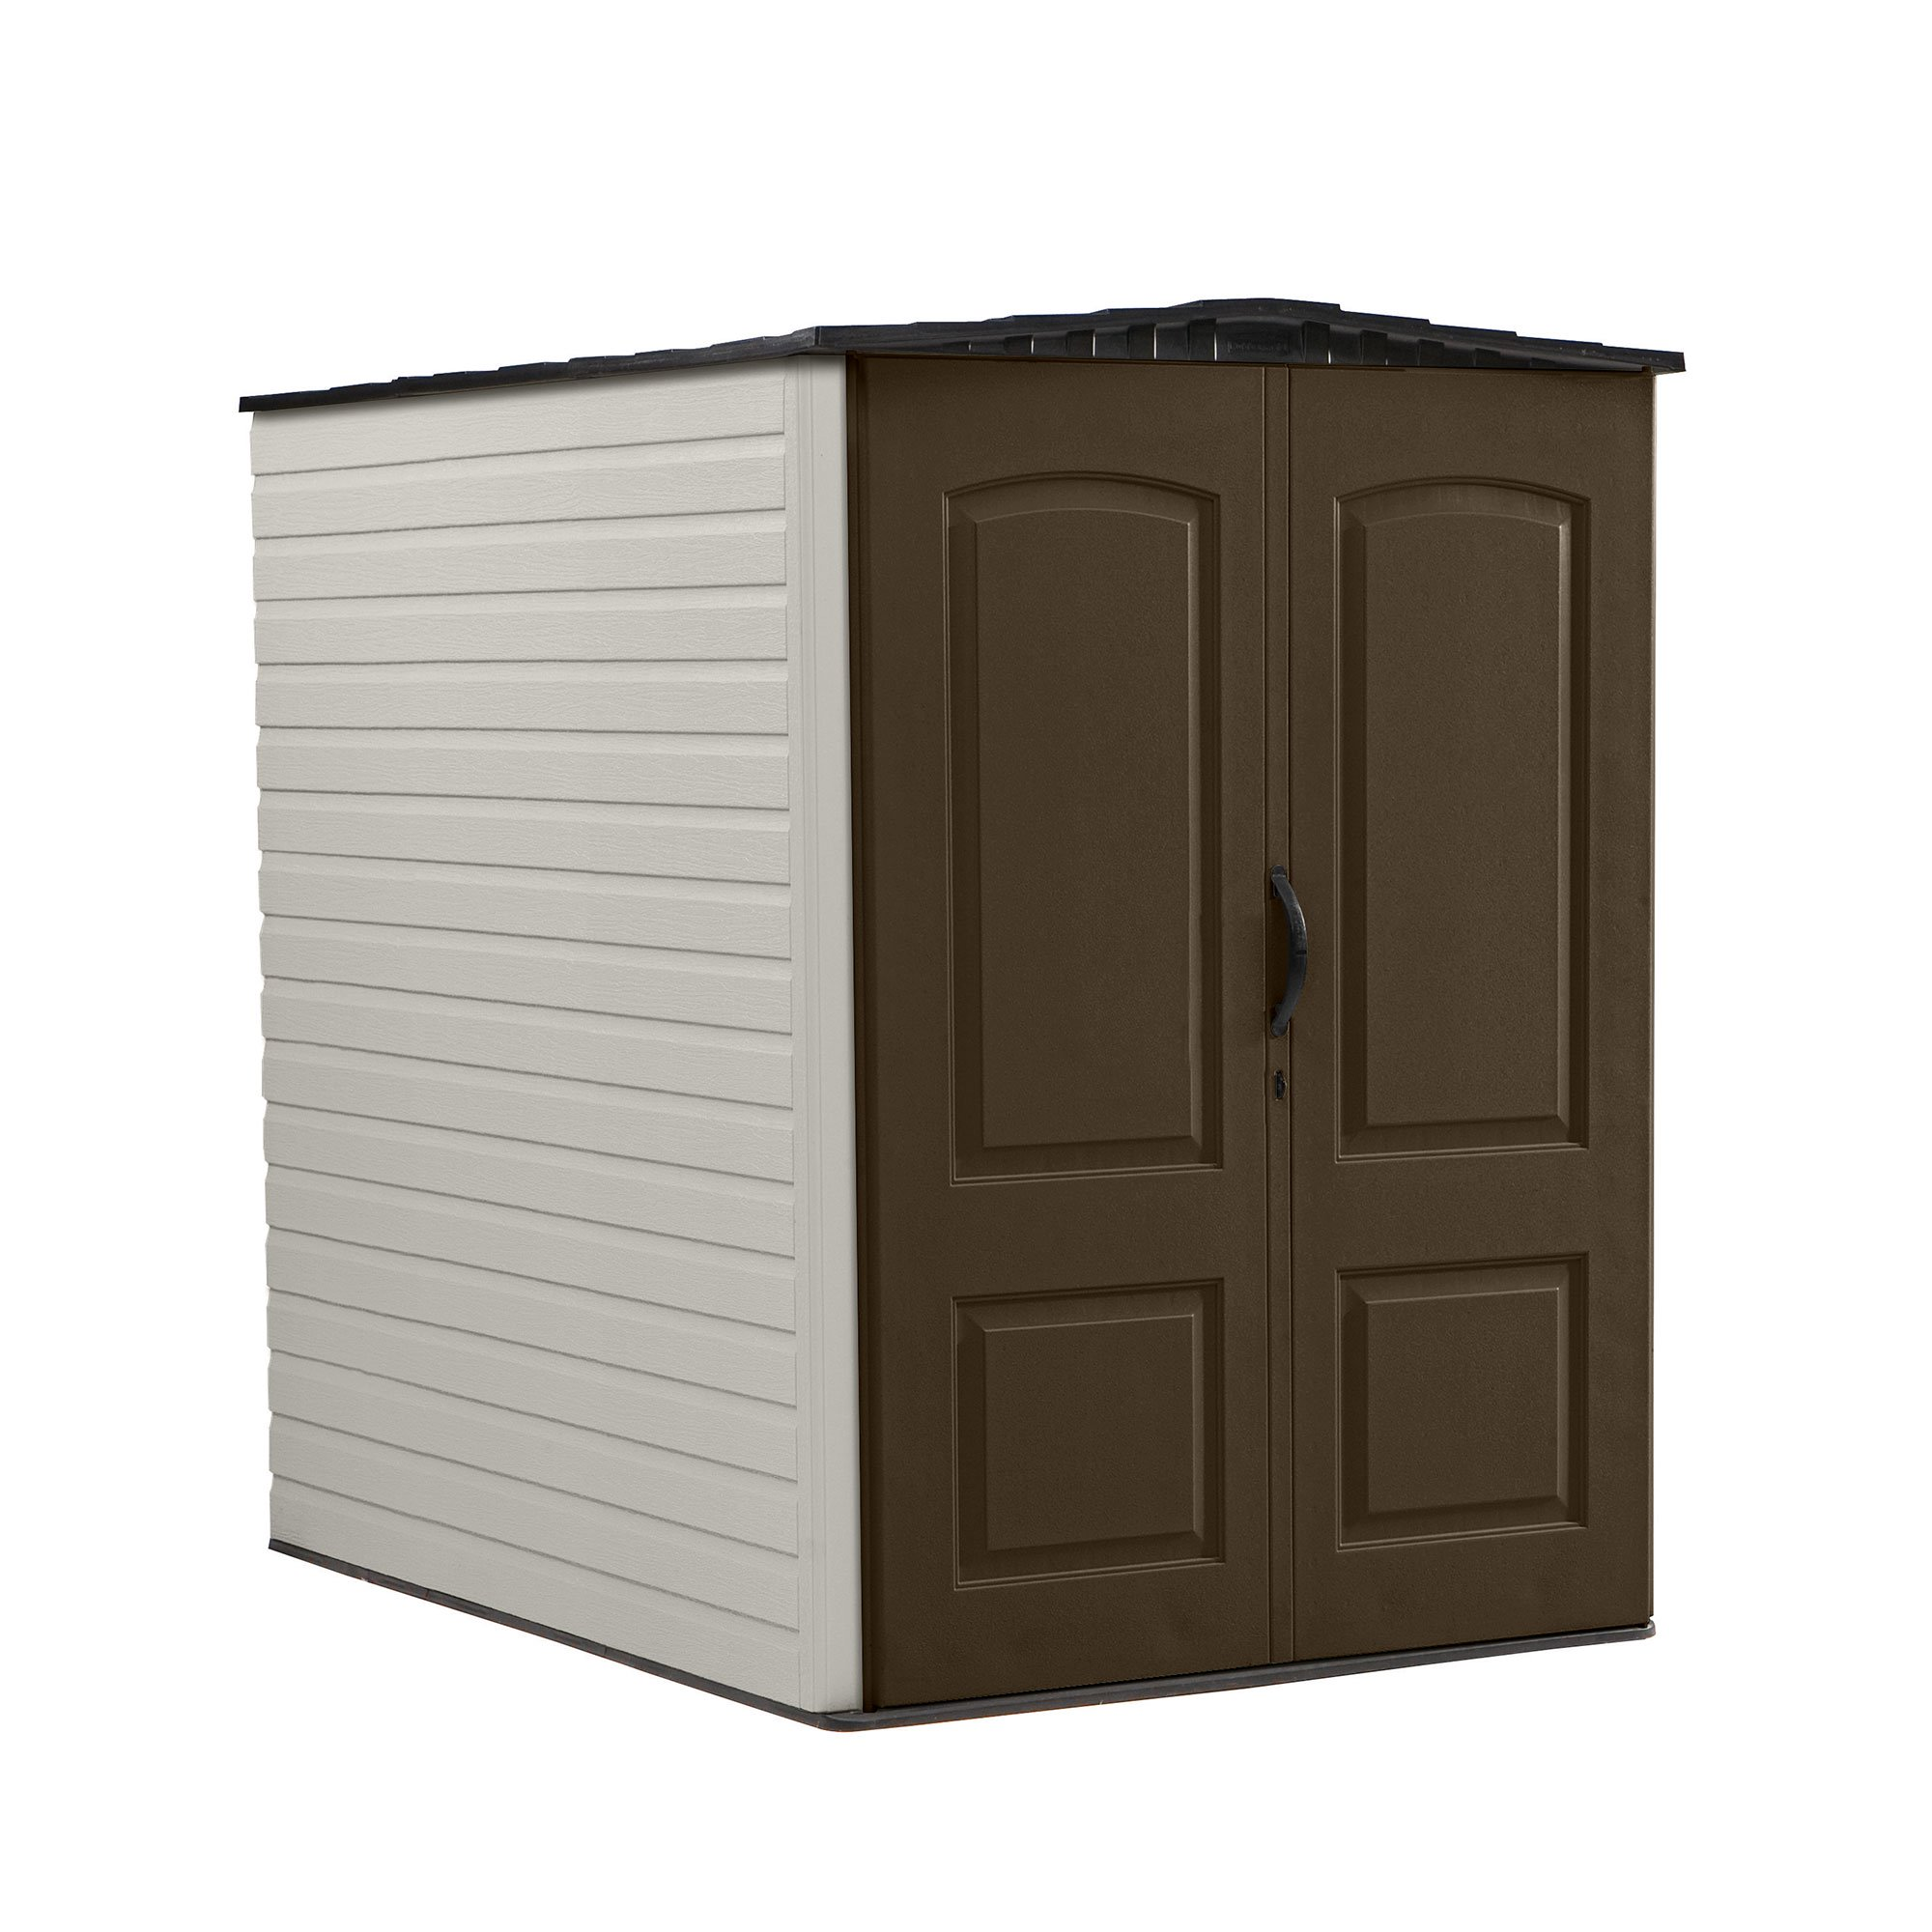 Rubbermaid Large Outdoor Backyard Gardening & Tools Vertical Storage Shed, Brown